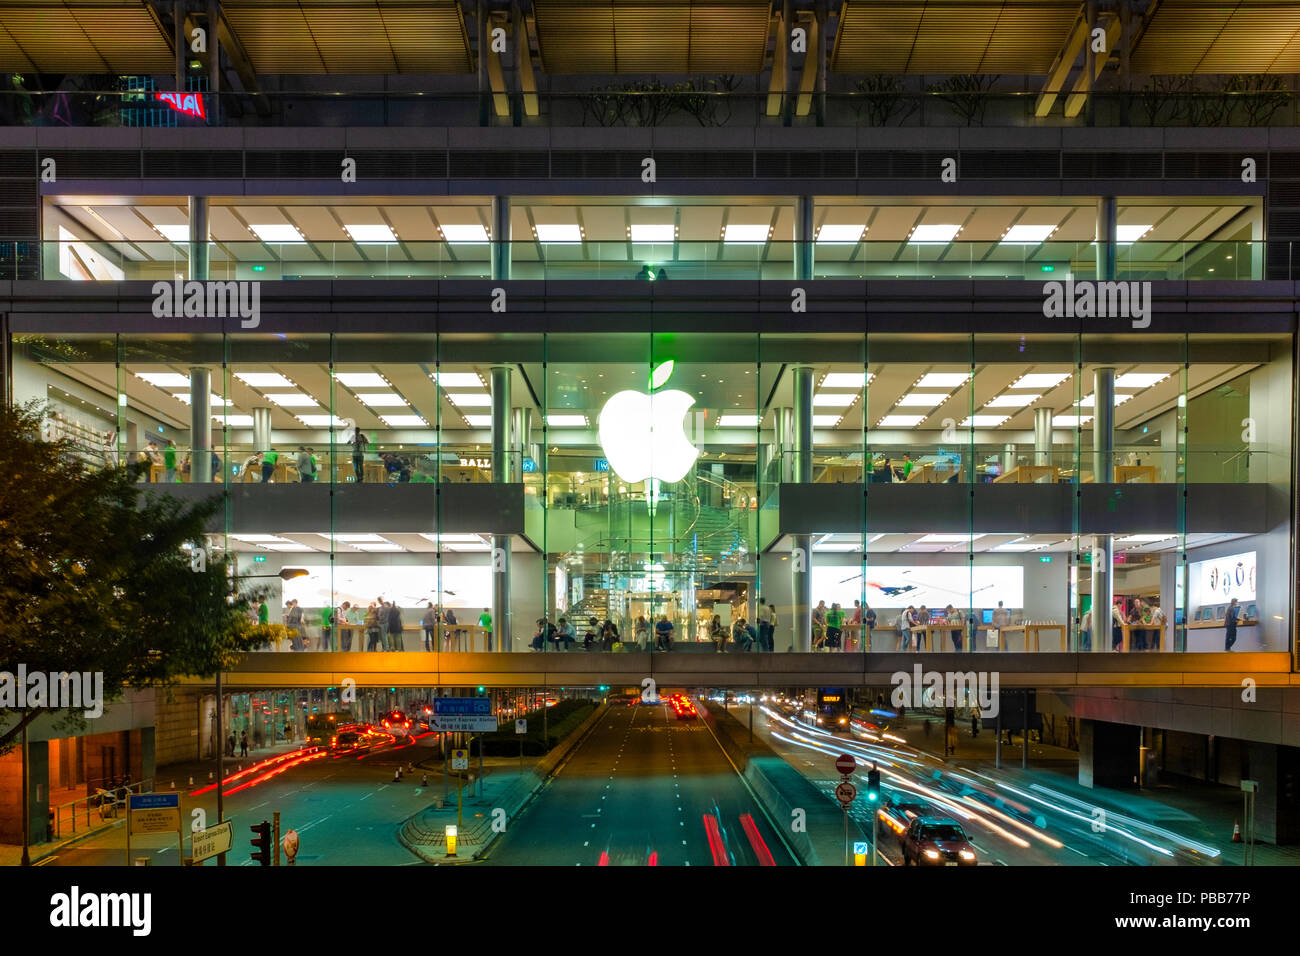 Apple store in the International Finance Centre Mall, Hong Kong Island, China Stock Photo